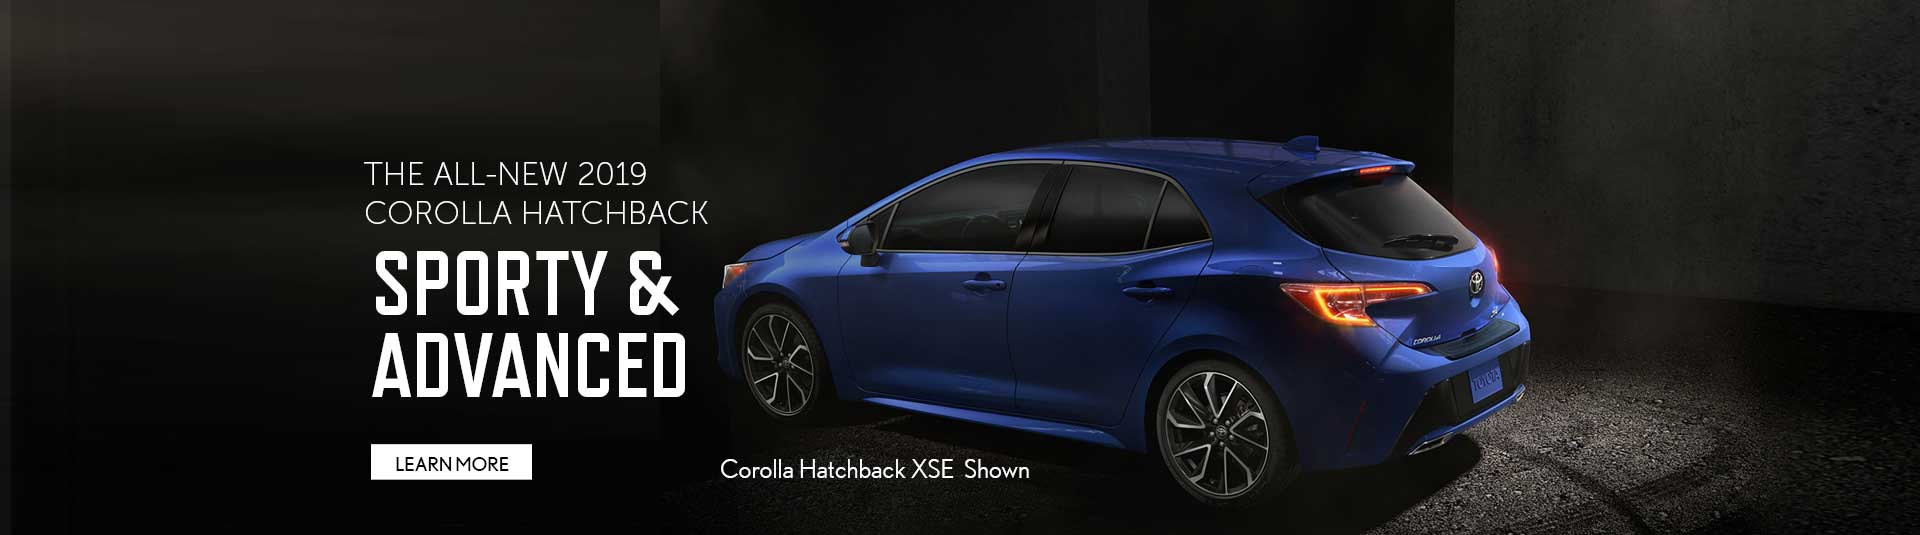 DowntownToyota-Corolla-Hatch-HERO.jpg